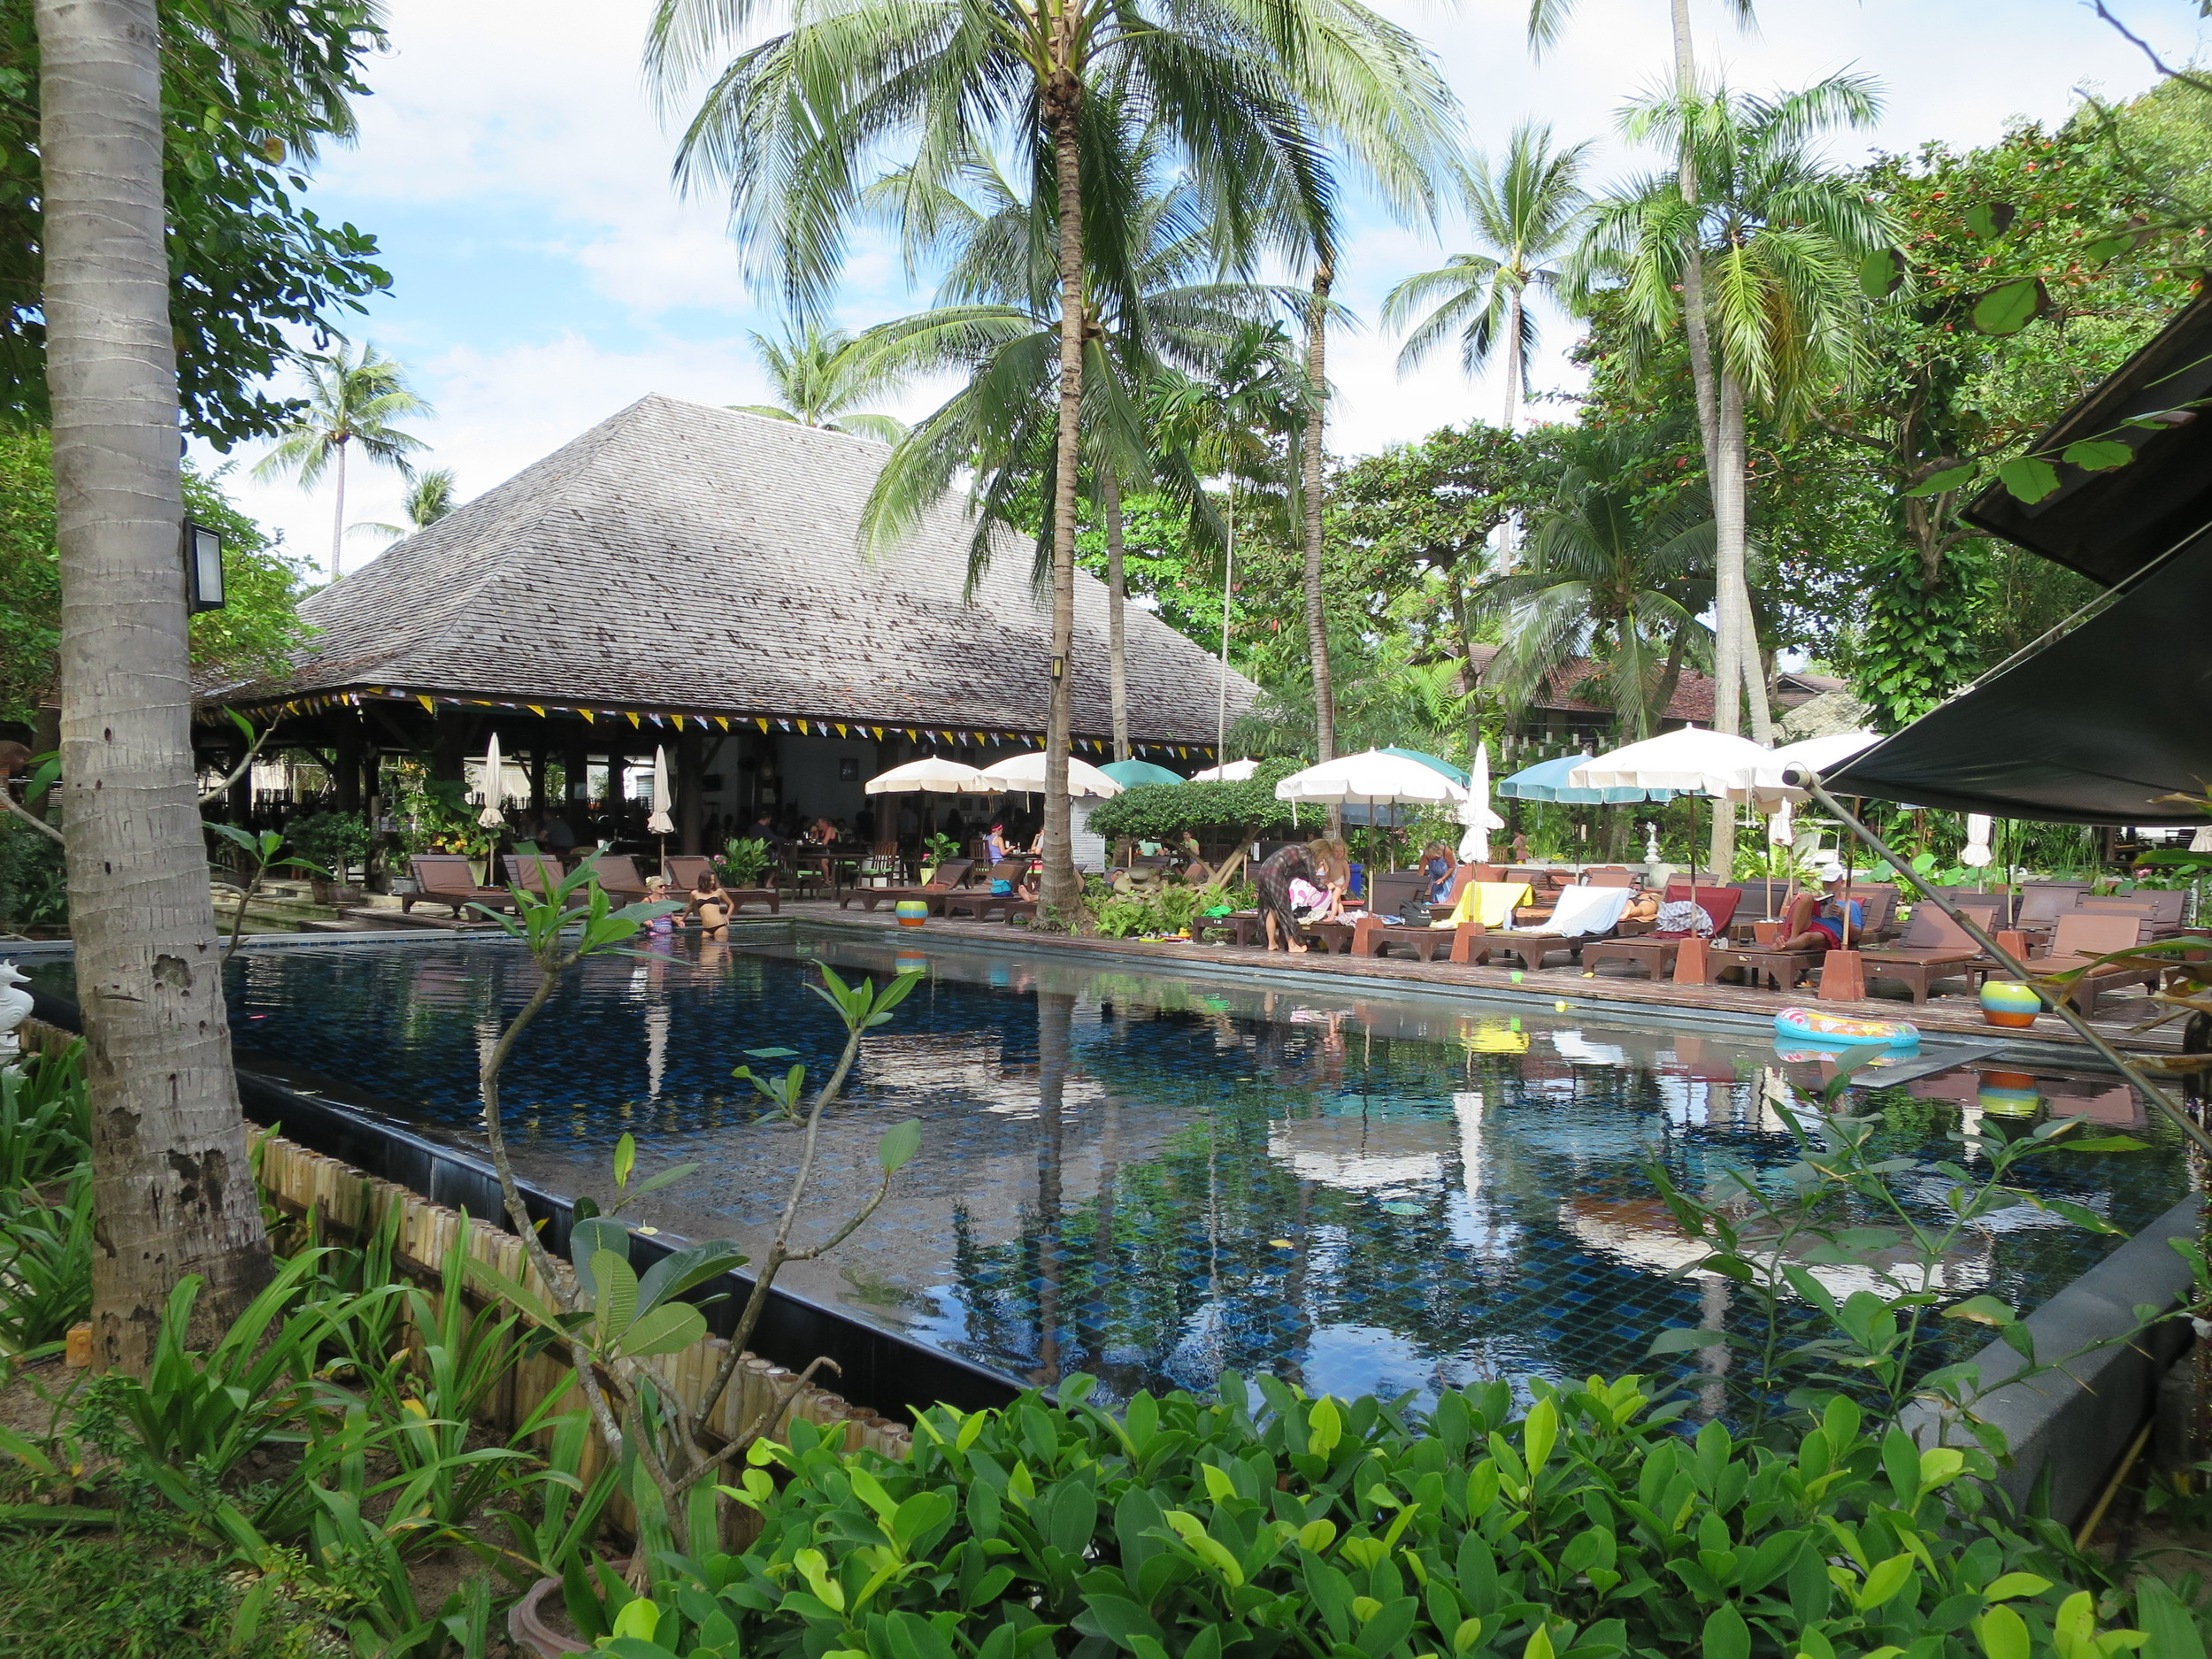 The hotel restaurant and pool